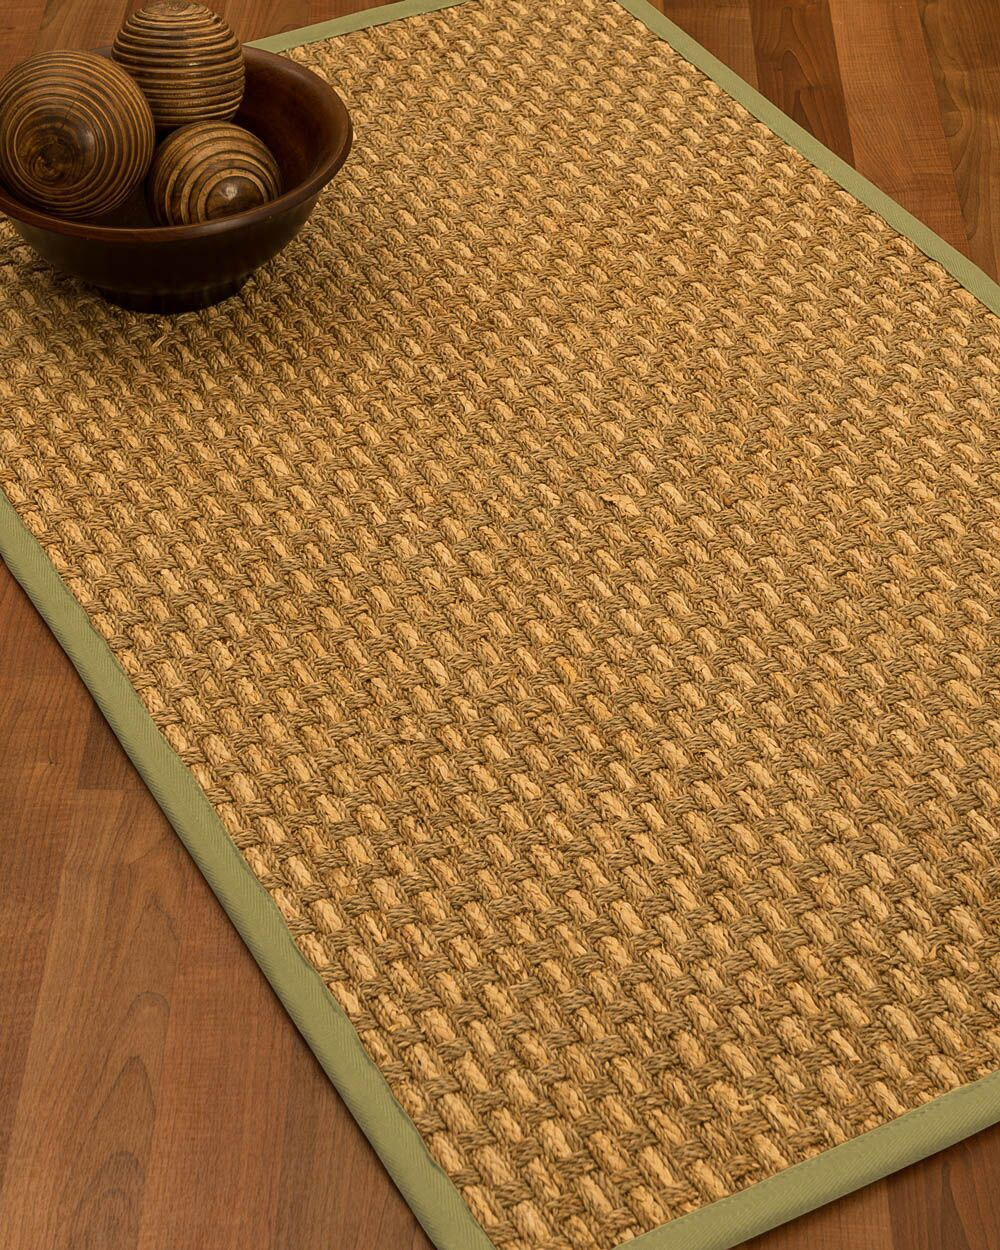 Castiglia Border Hand-Woven Beige/Natural Area Rug Rug Size: Rectangle 4' x 6', Rug Pad Included: Yes